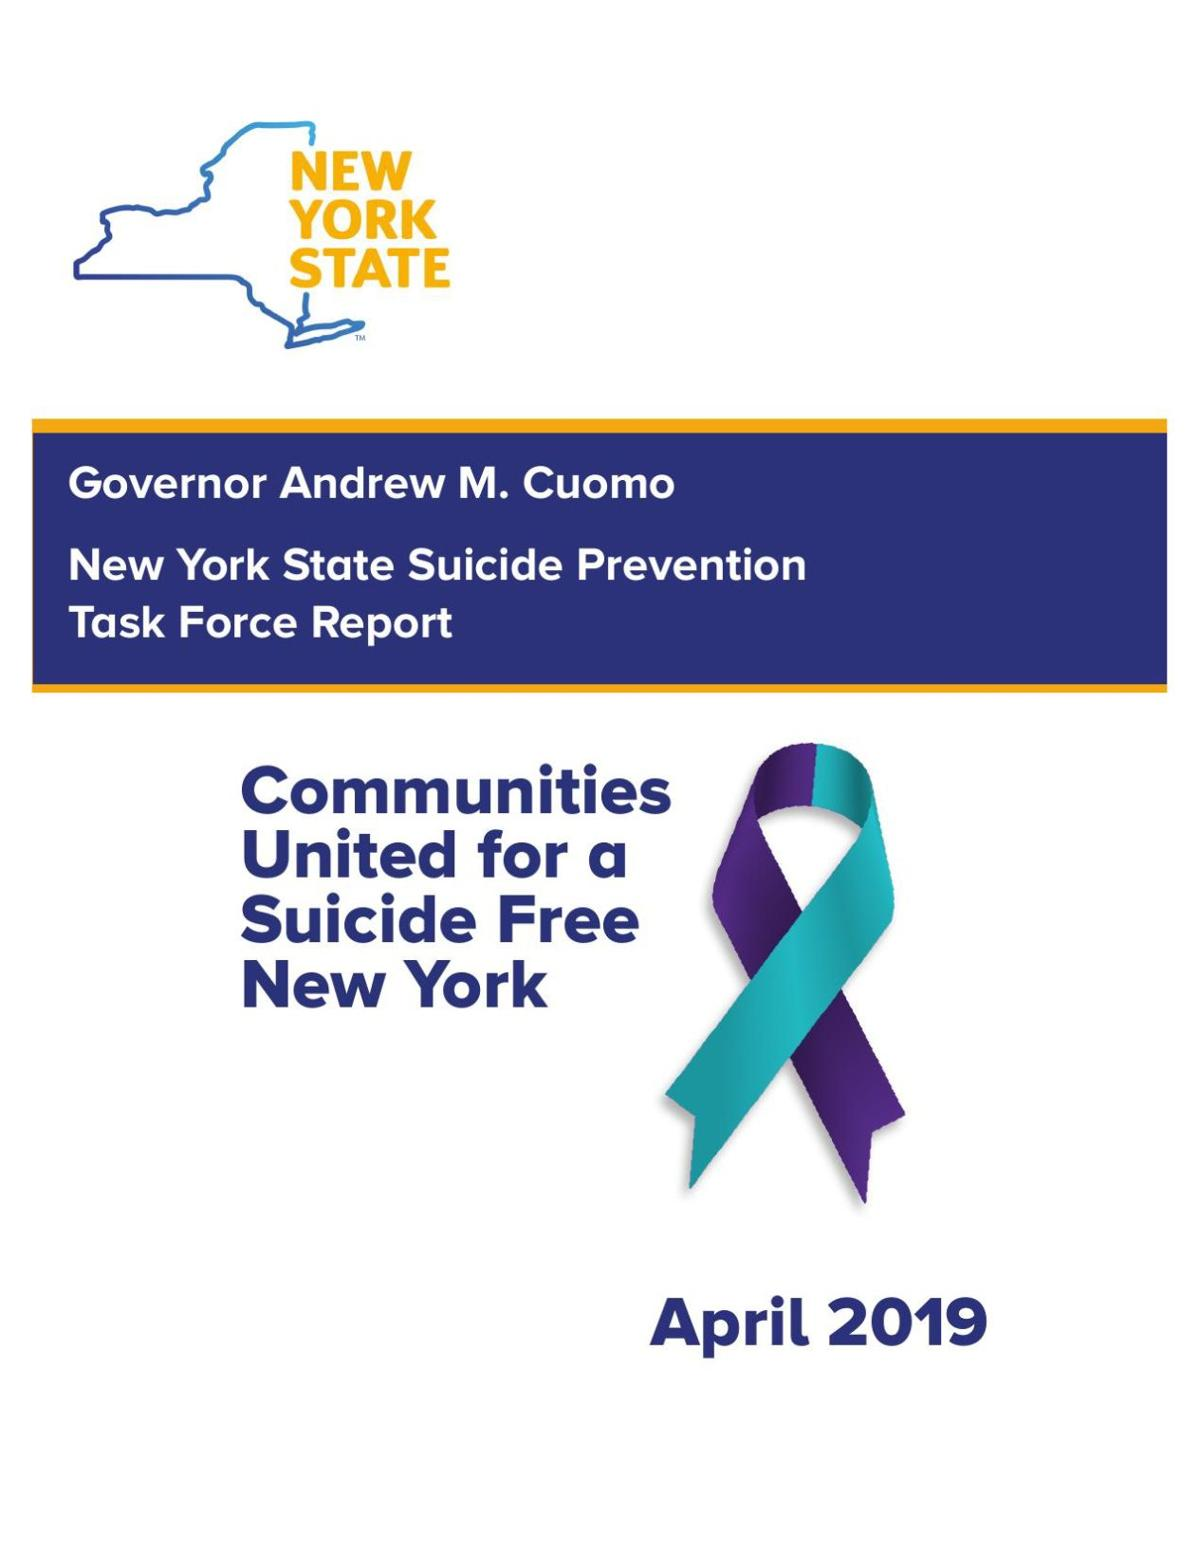 NYS Suicide Prevention Task Force Report